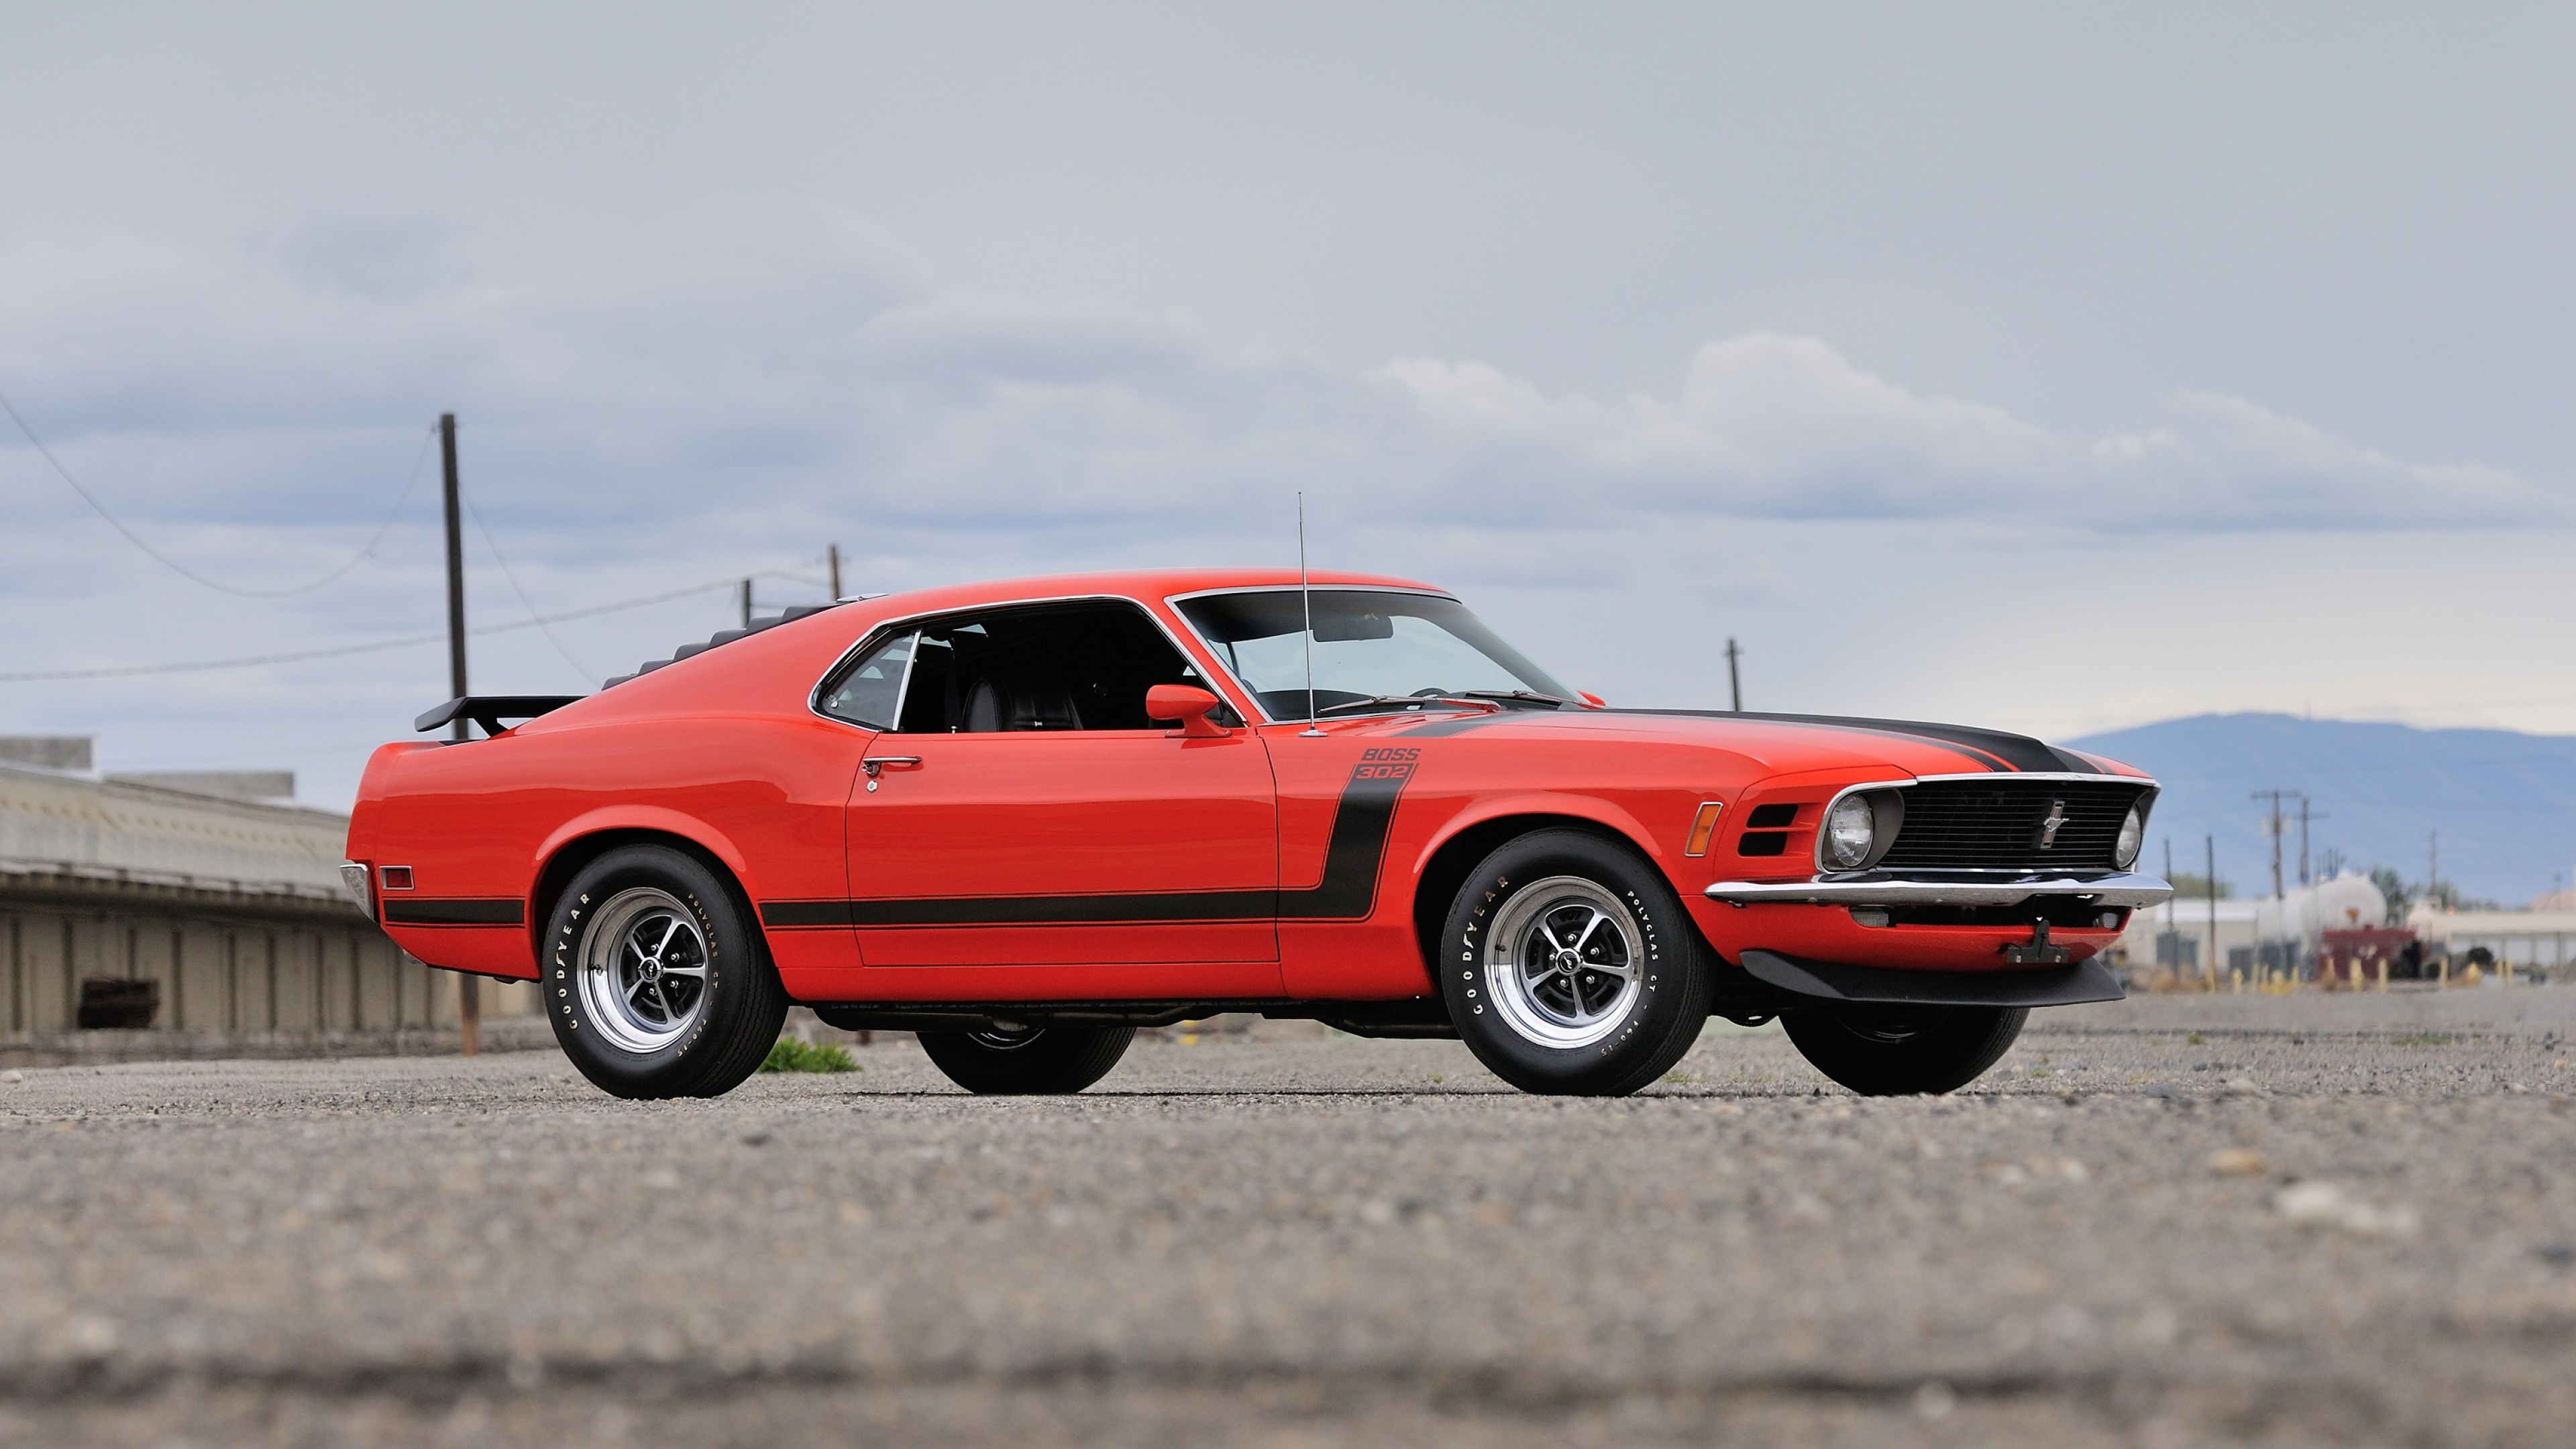 Ford Mustang Boss 302 Red Muscle Car, HD 4K Wallpaper